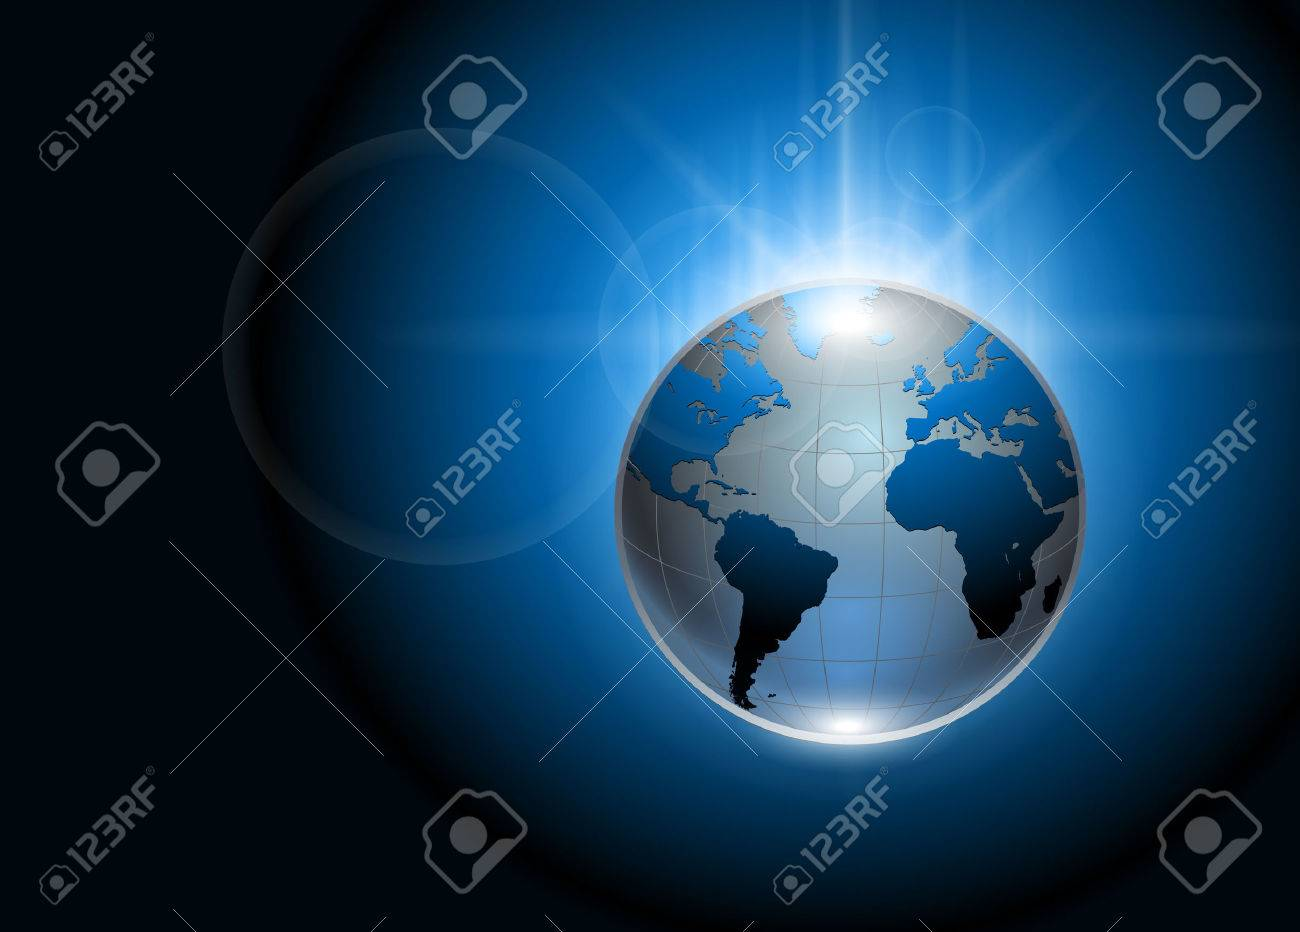 Abstract background blue glowing earth globe - 7910507